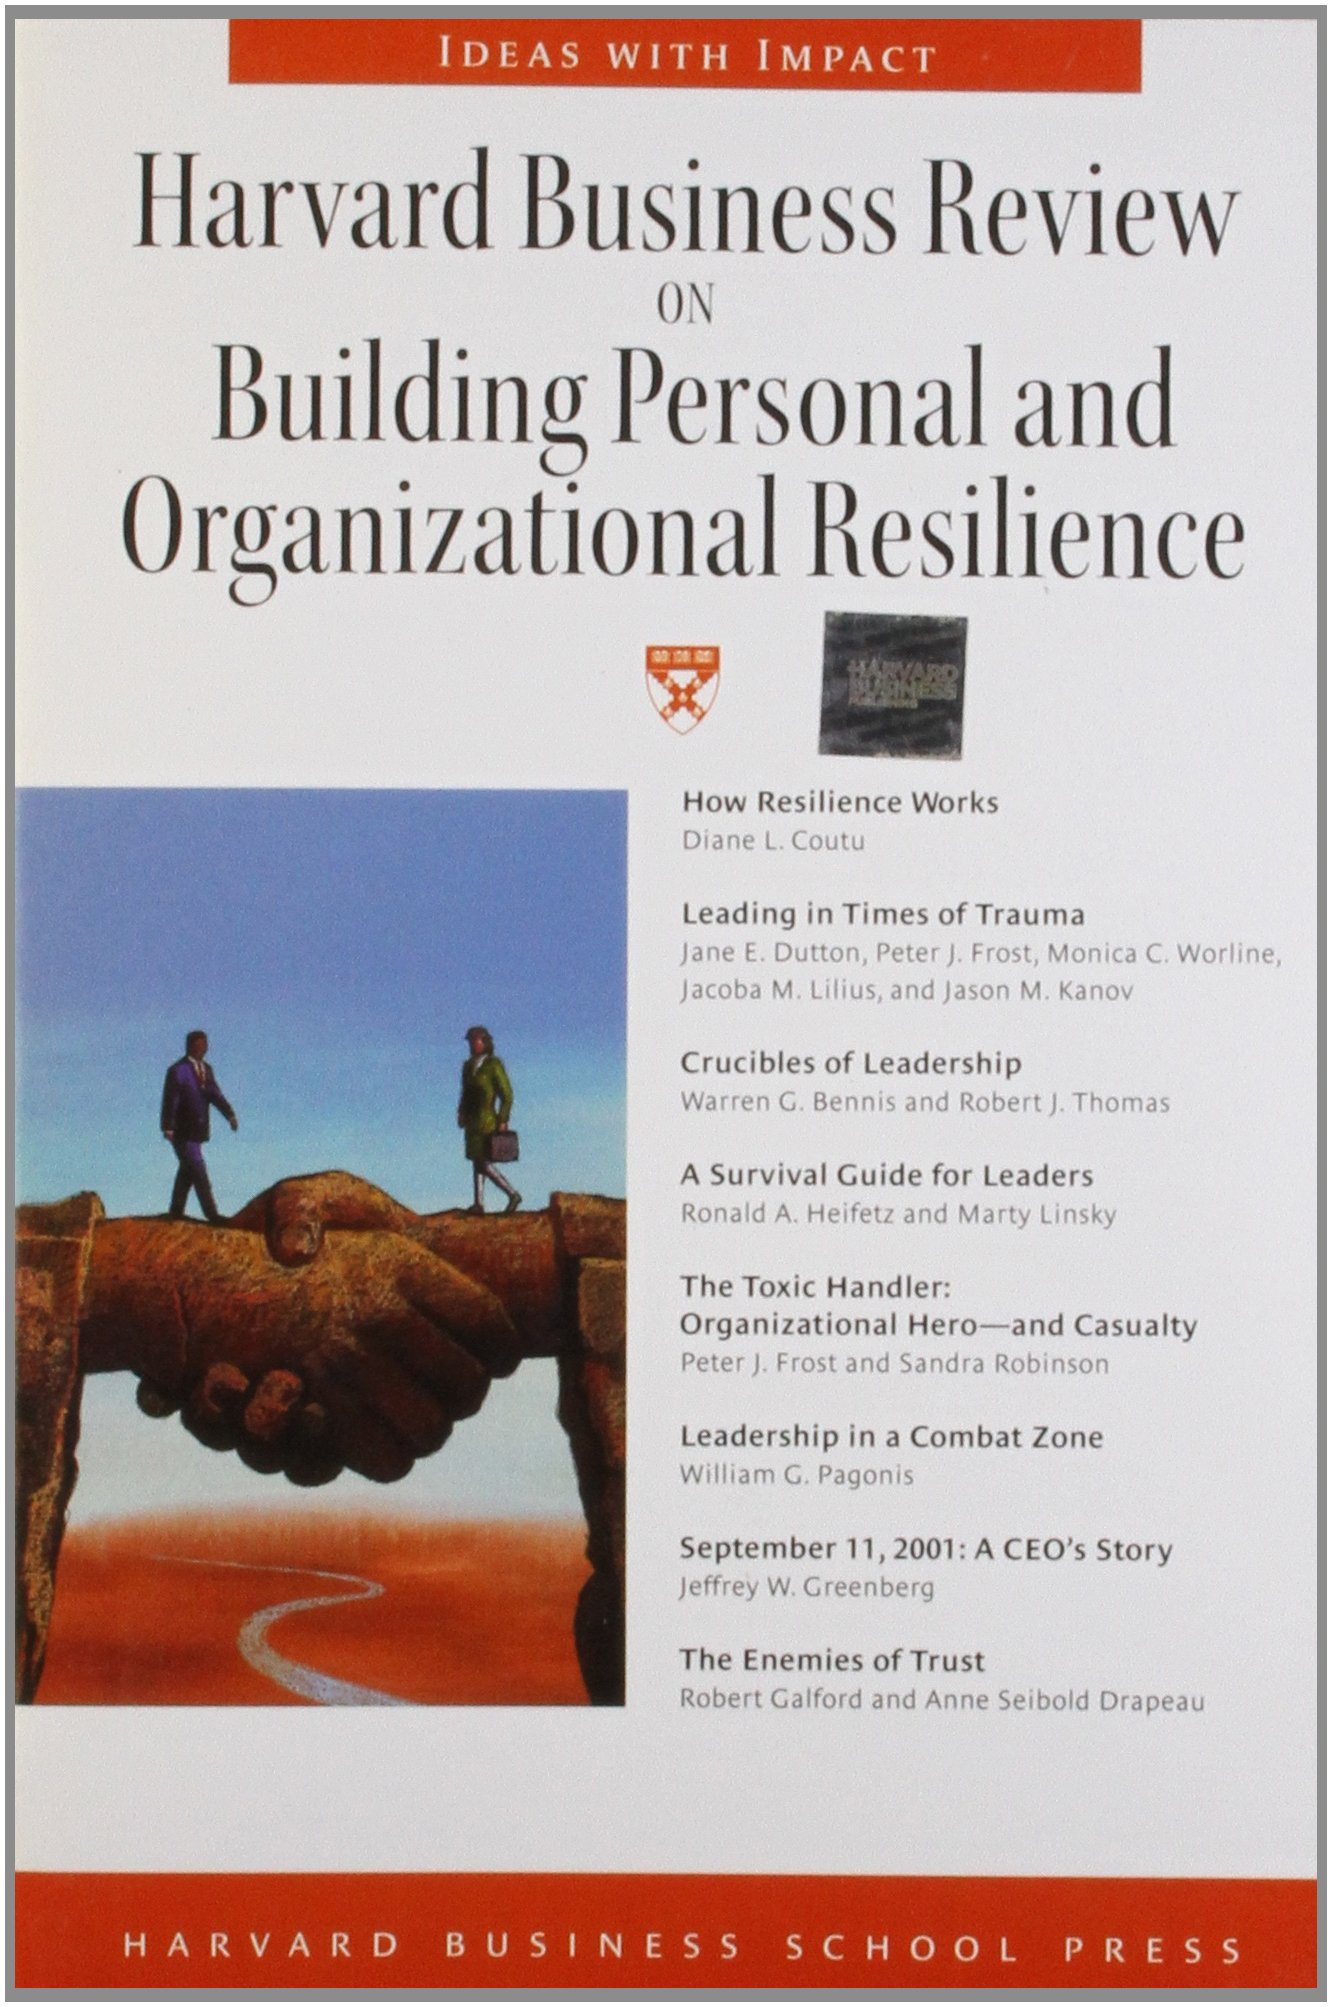 Harvard Business Review on Building Personal and Organizational Resilience (Harvard Business Review Paperback Series) ebook